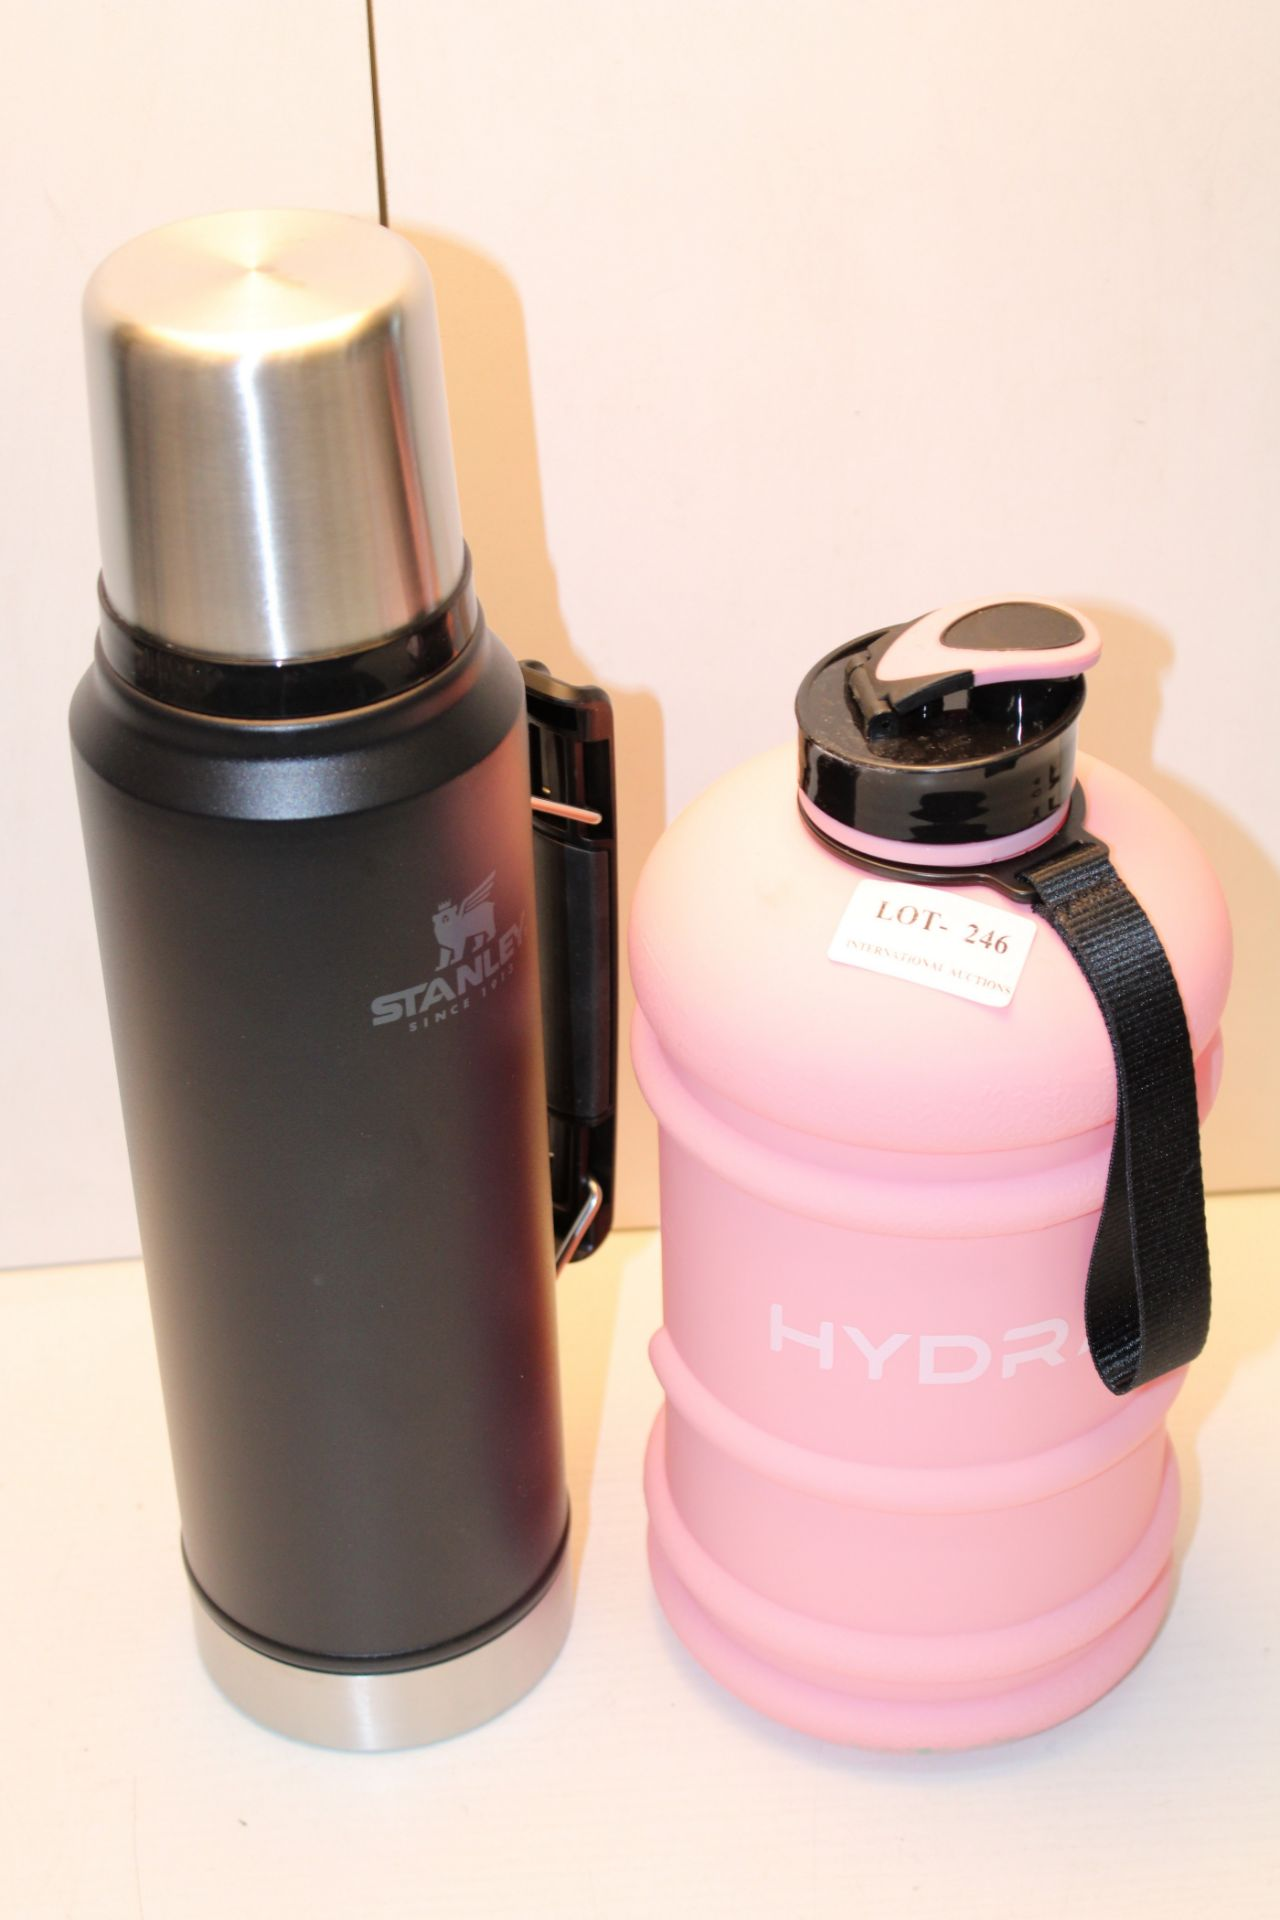 X 2 BOTTLES/FLASH, STANLEY & HYDRATECondition ReportAppraisal Available on Request- All Items are